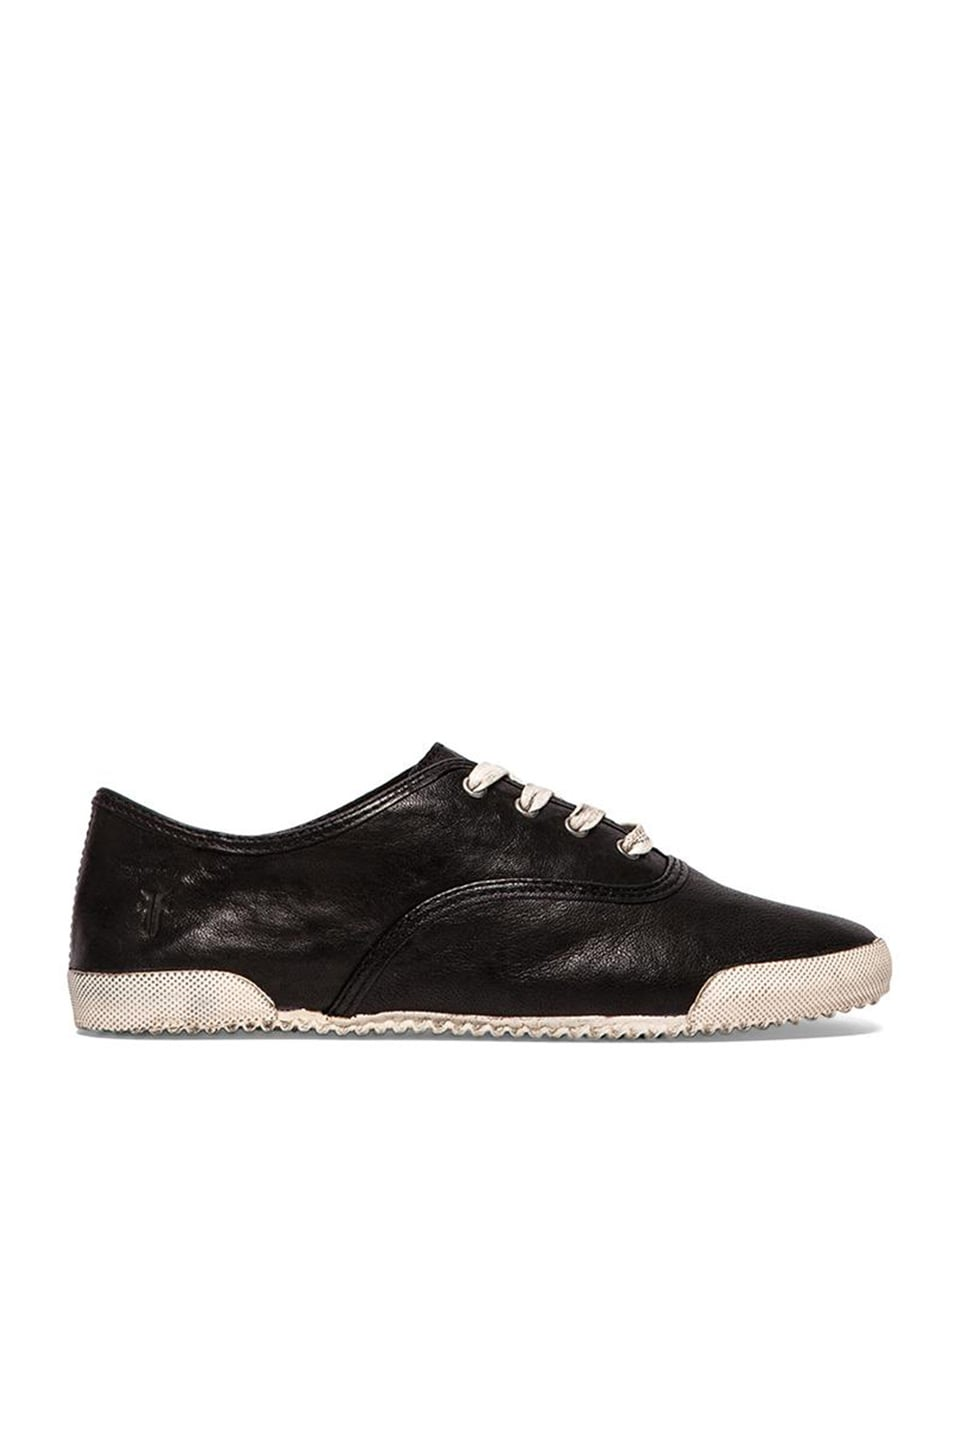 Frye Melanie Low Sneaker in Black